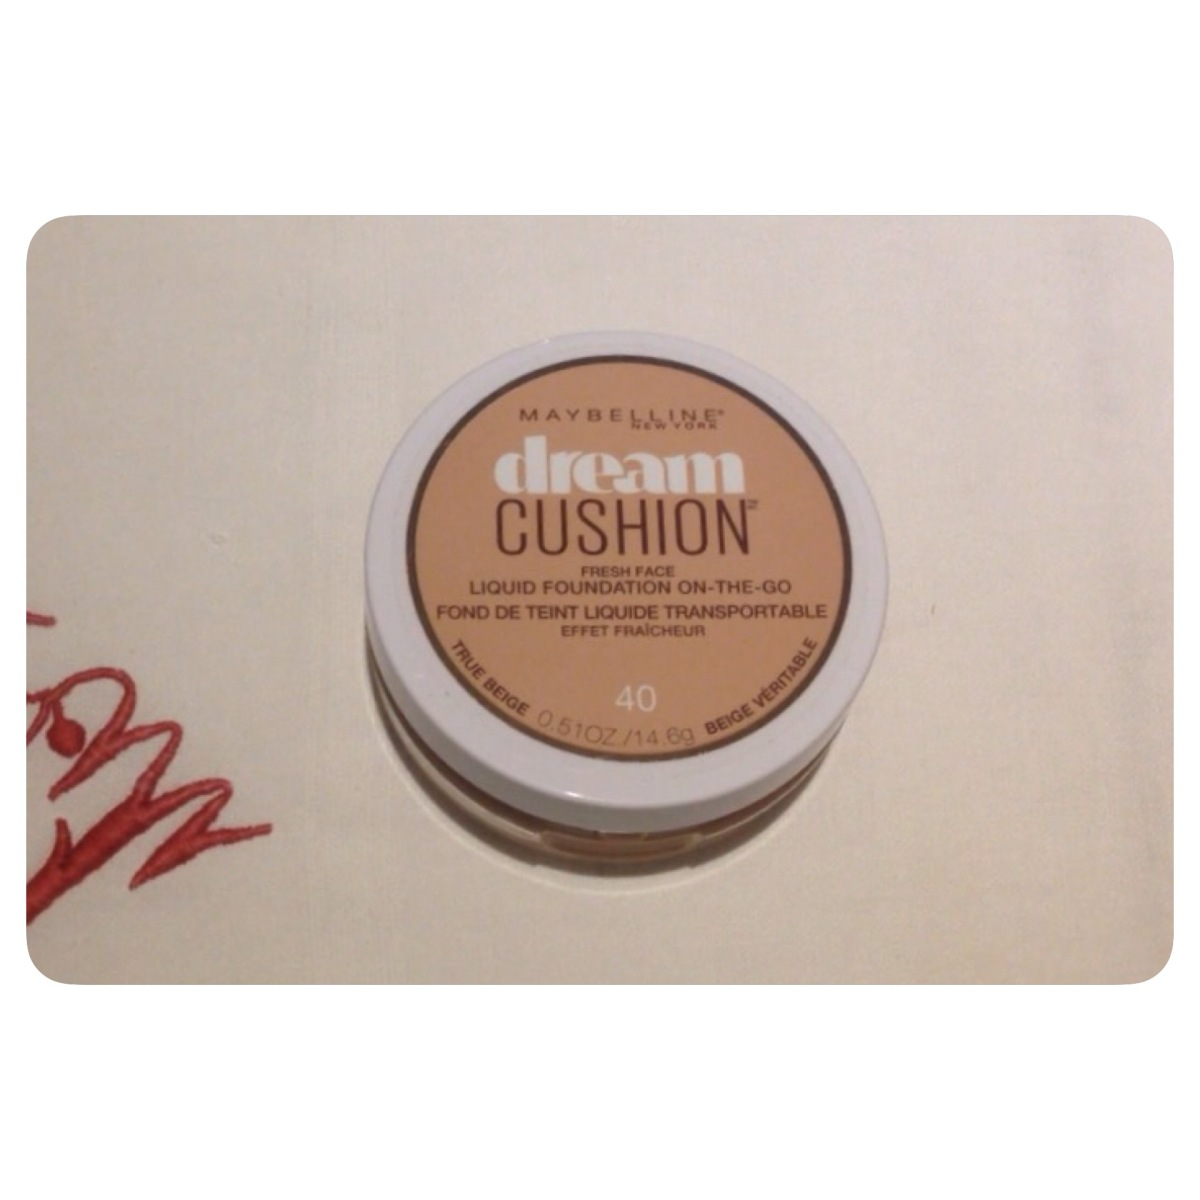 Maybelline Dream Cushion Liquid Foundation On-The-Go